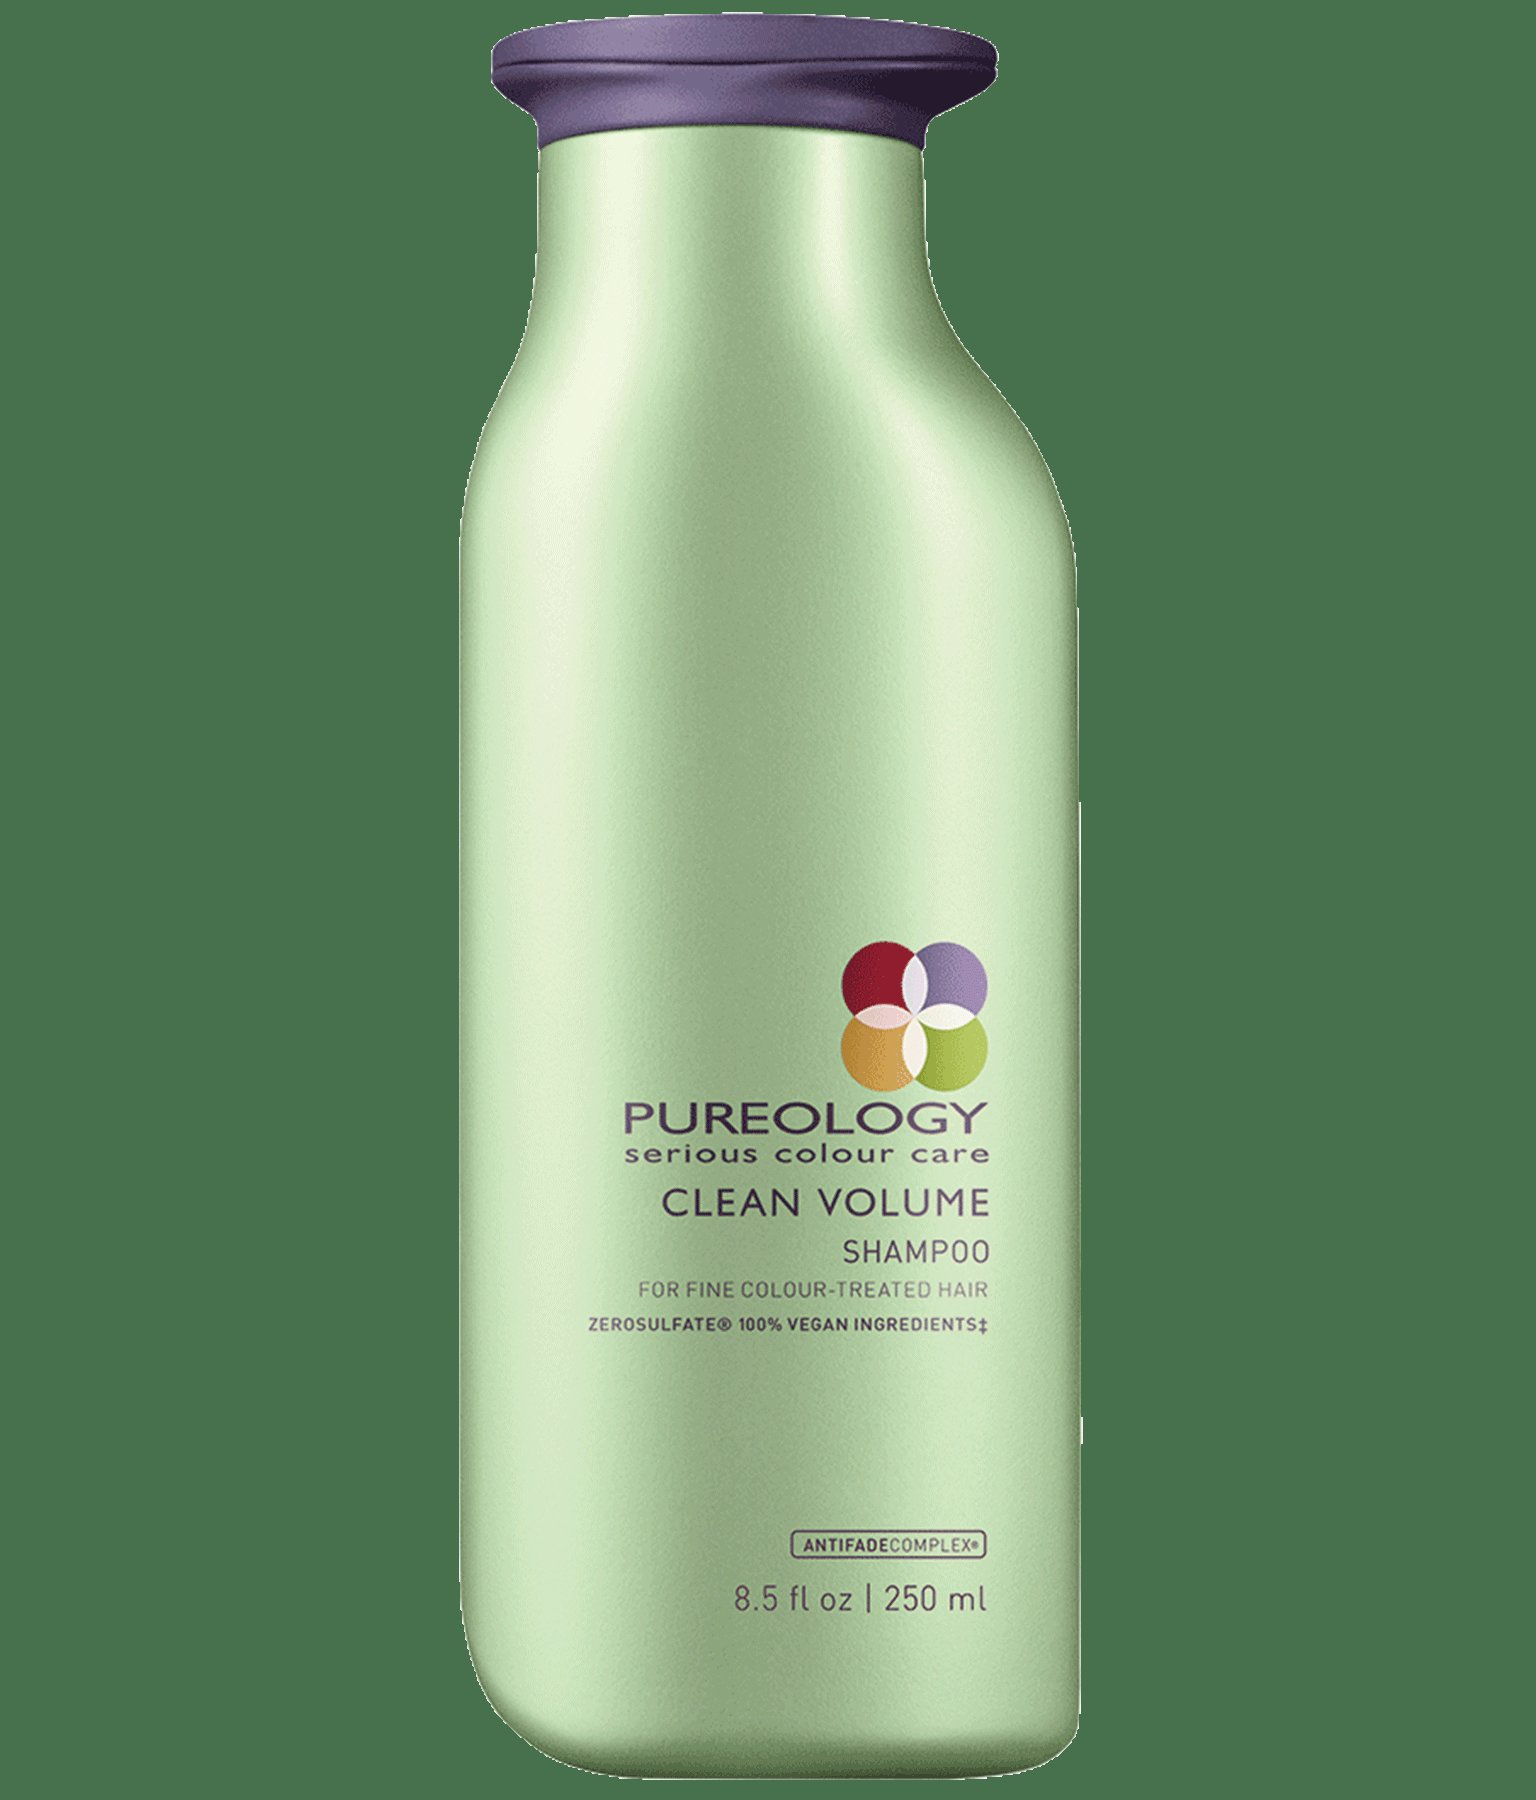 The Best Volumizing Shampoo Color Treated Hair Pureology Clean Volume Pictures